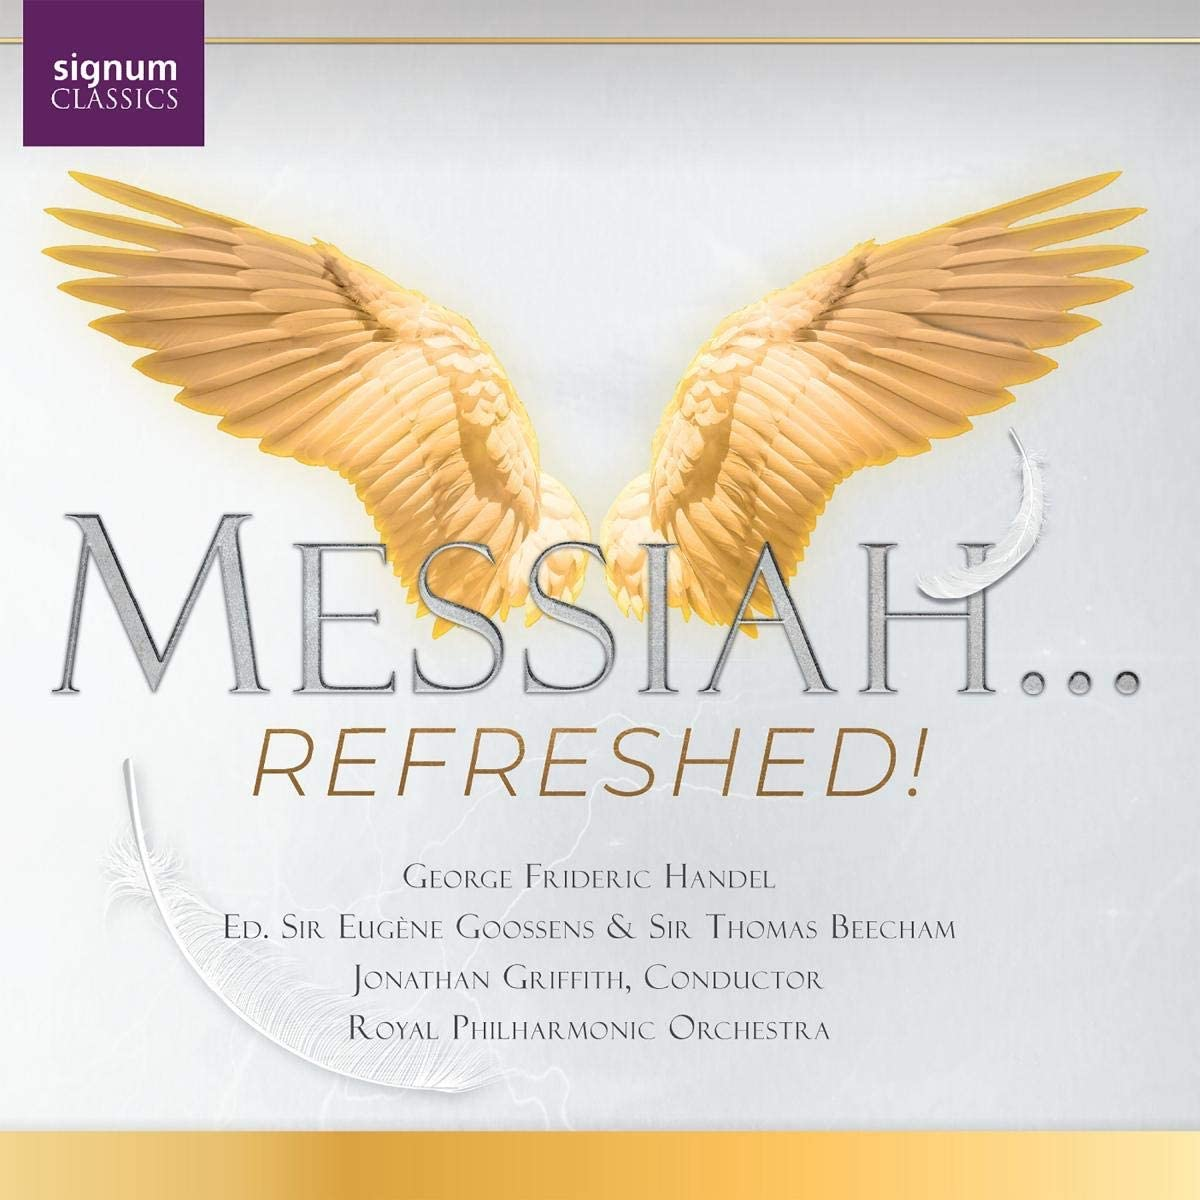 Review of HANDEL Messiah ... Refreshed!